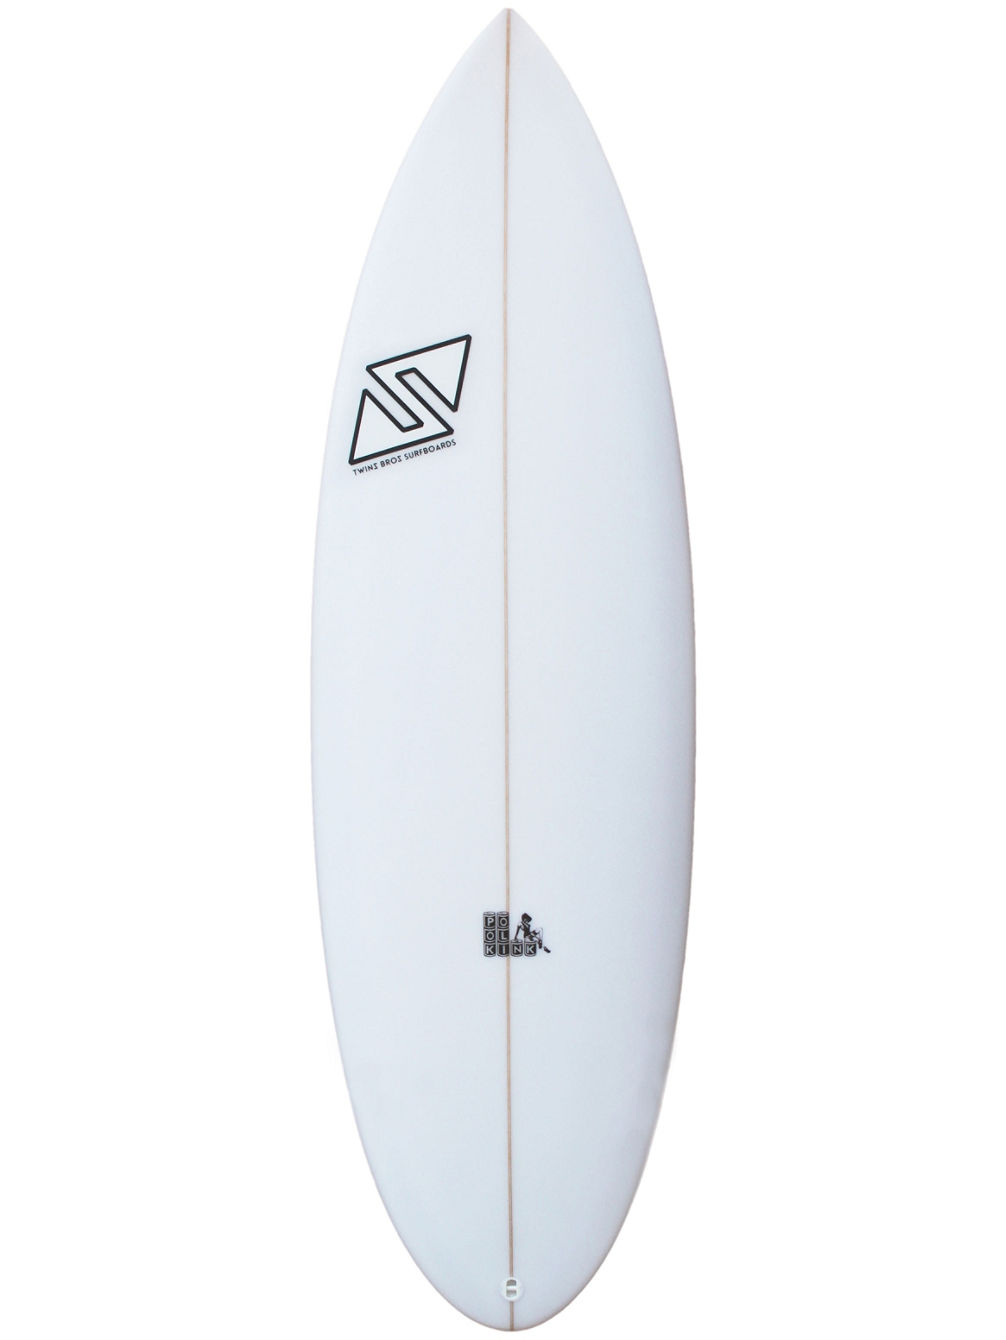 Pool Kink PU Future 5.8 Surfboard